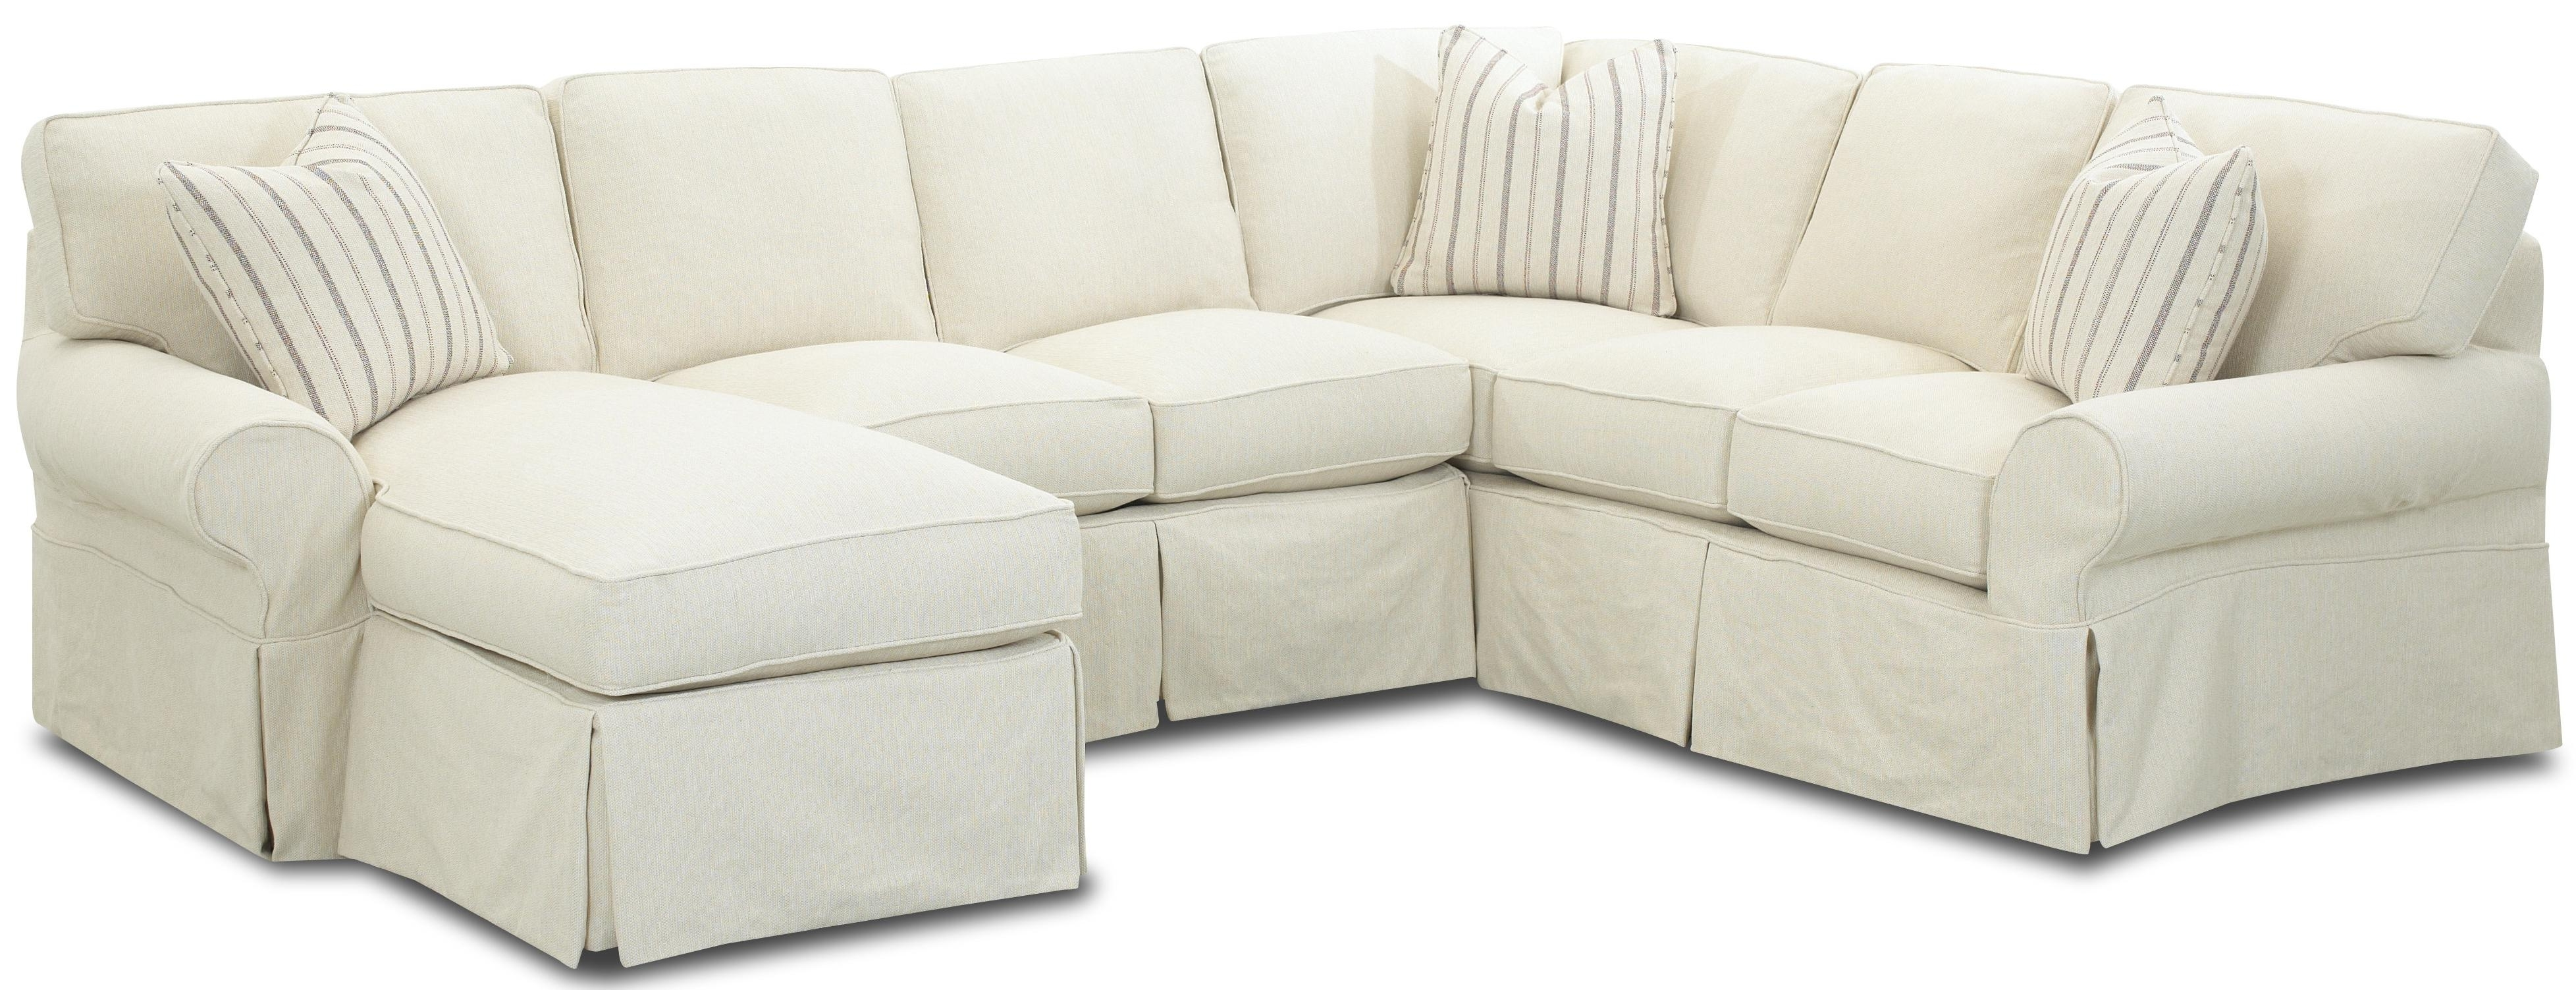 Well Known Slipcovers For Sectional Sofas With Chaise Regarding Awesome Slipcover Sectional Sofa With Chaise 91 For Modern Sofa (View 6 of 15)